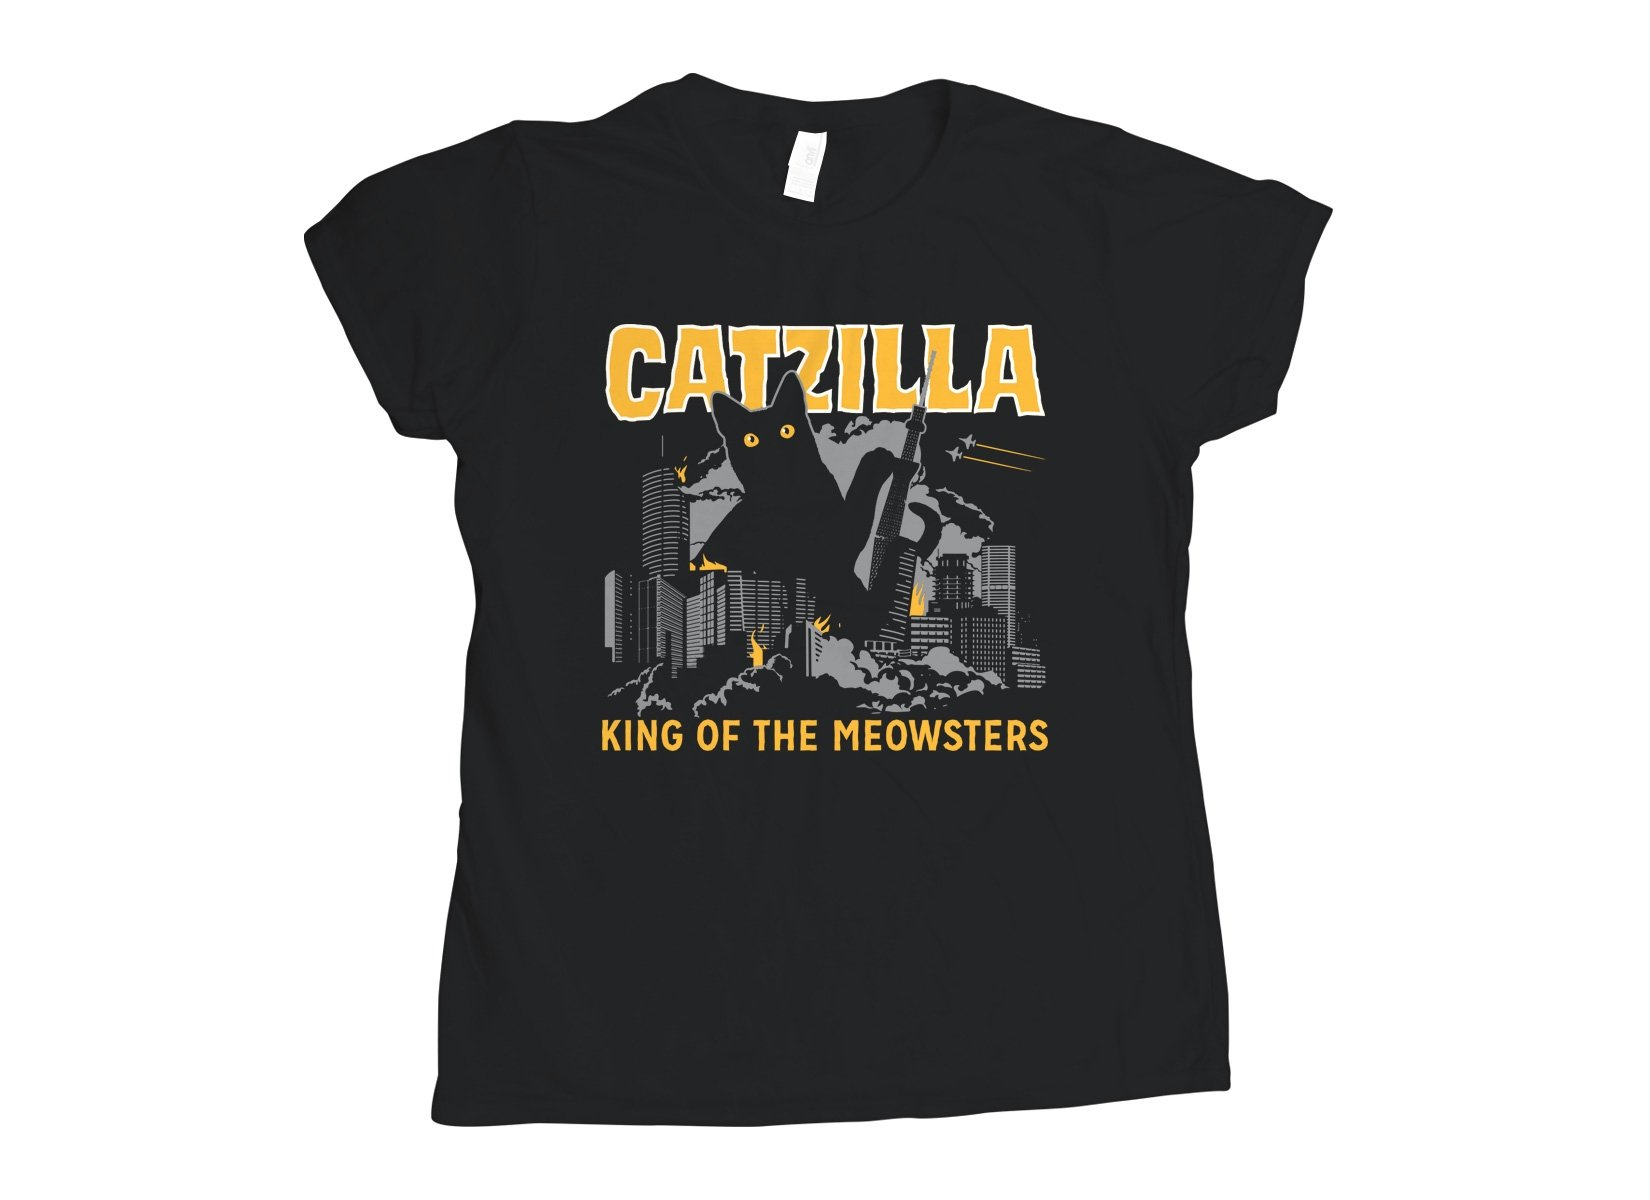 Catzilla on Womens T-Shirt